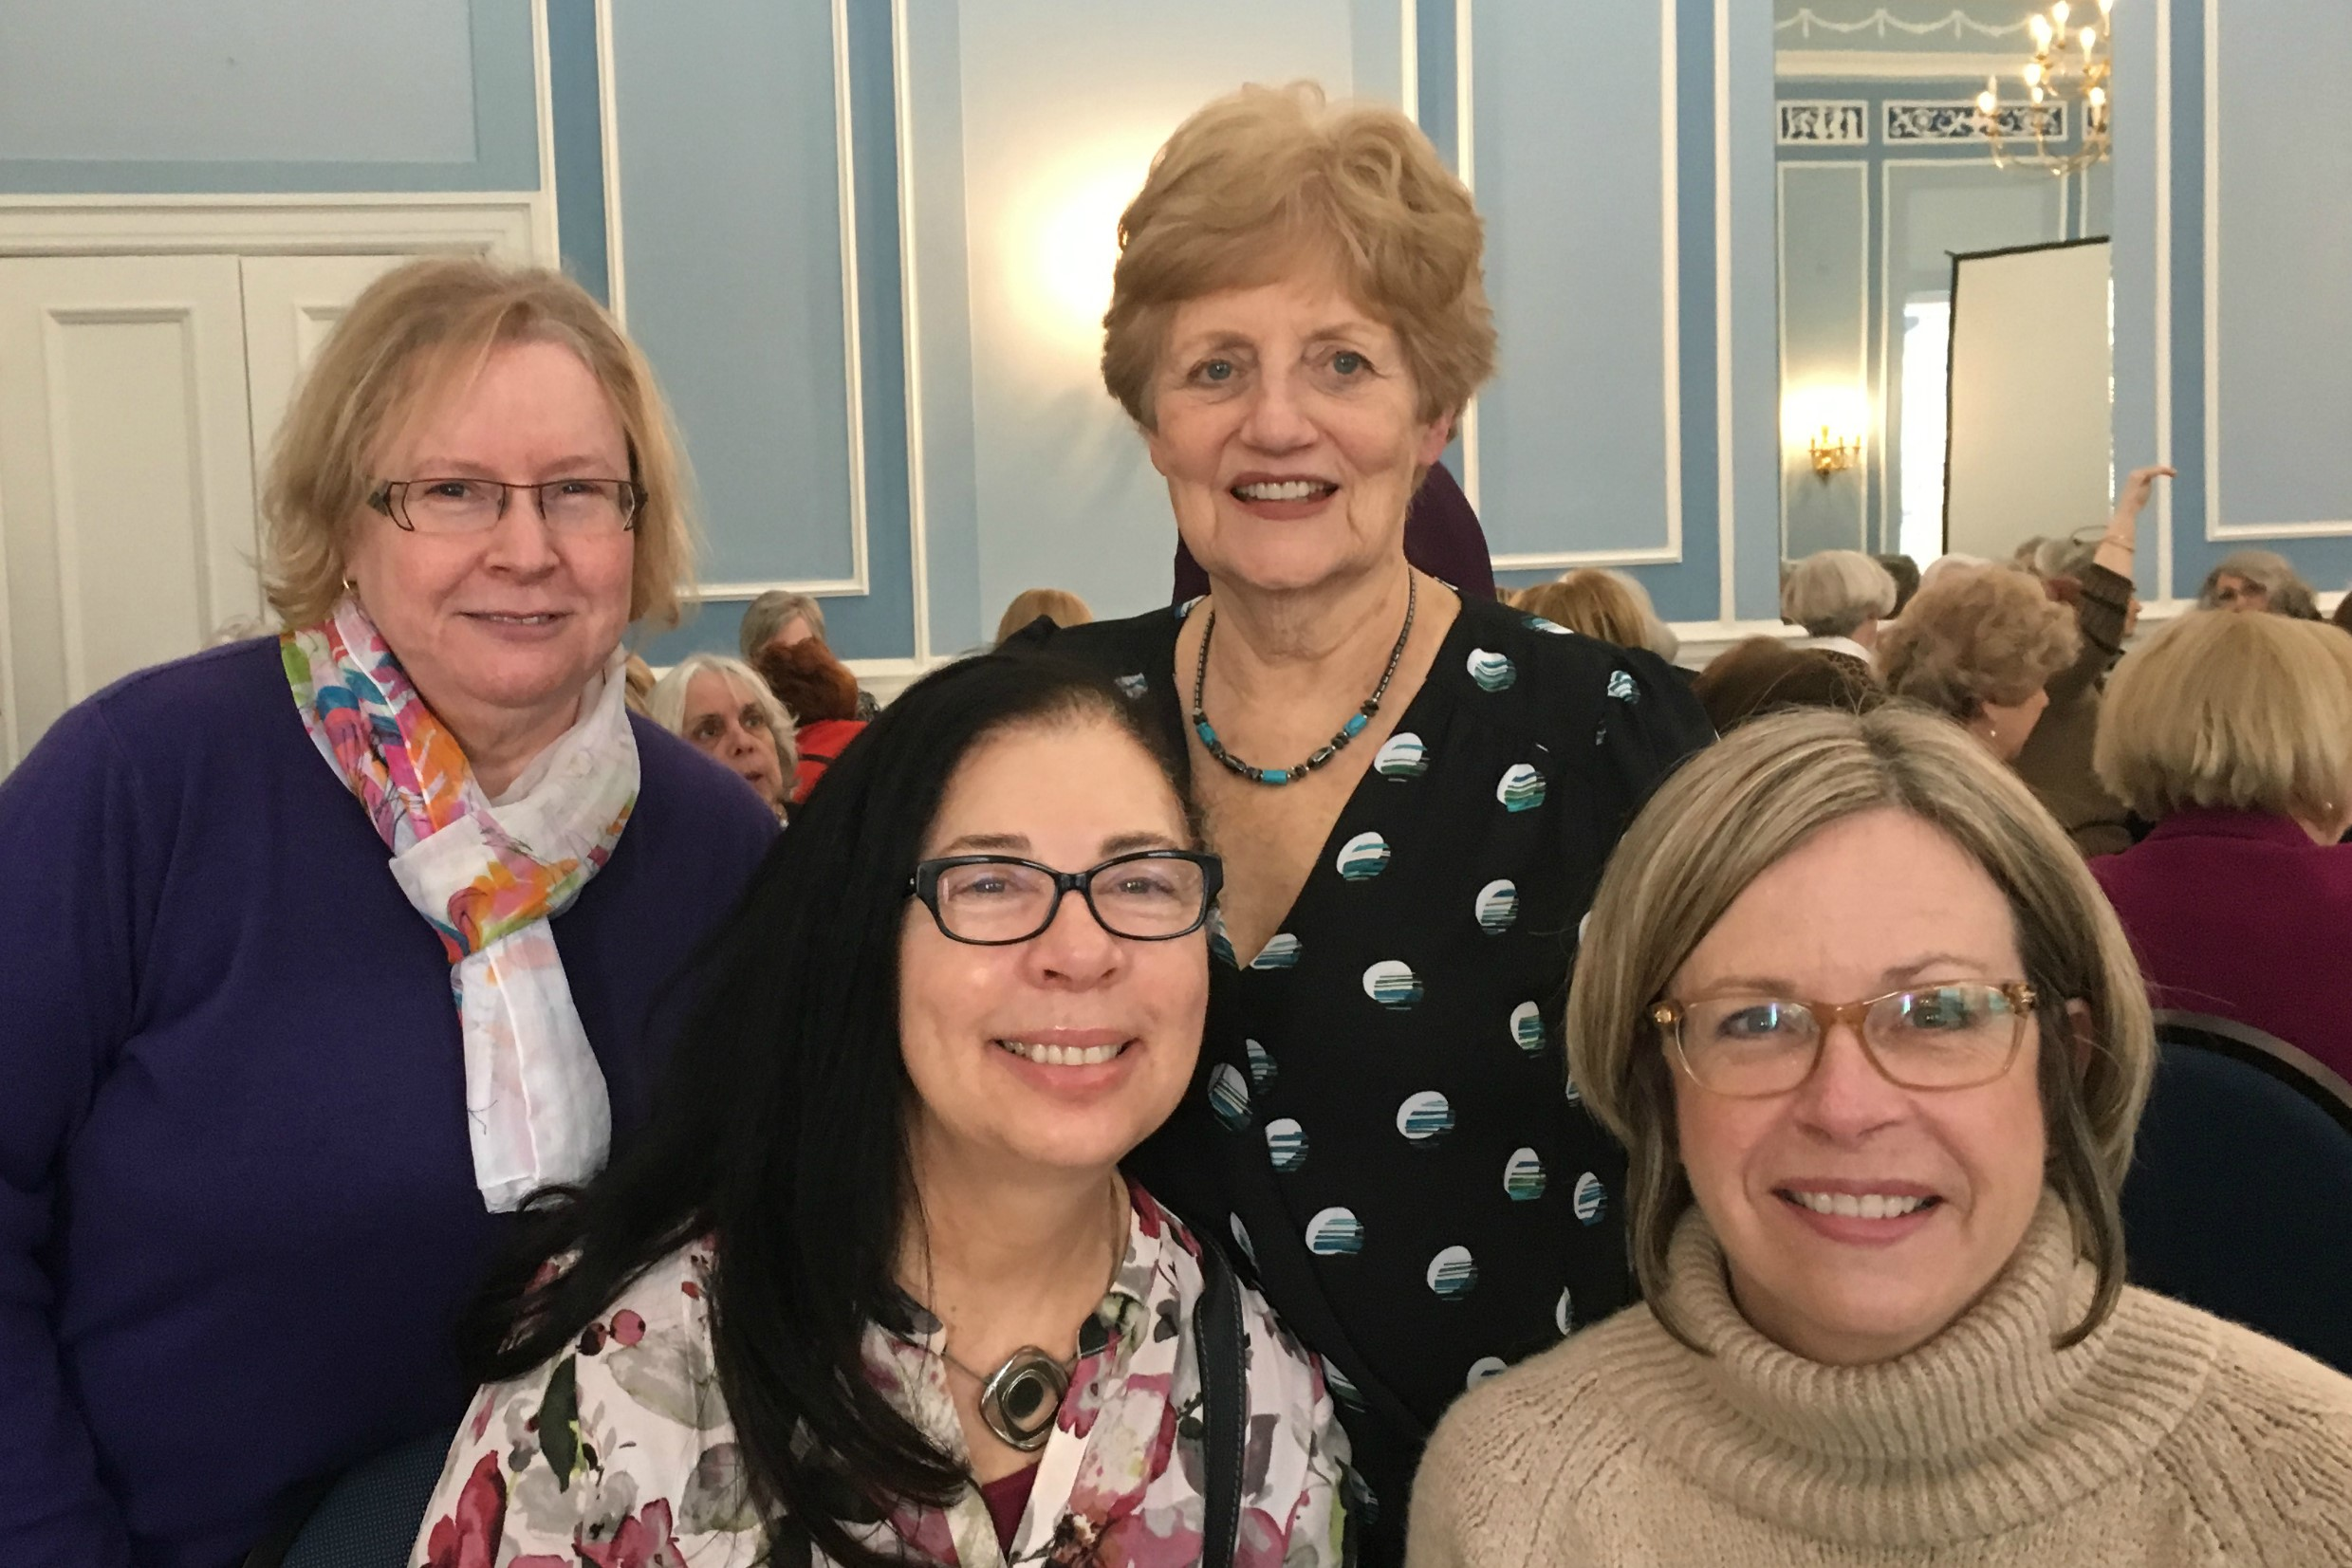 International Women's Day 2019 at U of T Faculty Club. Judith P., Diane R.,Dianne M., Kathy M.